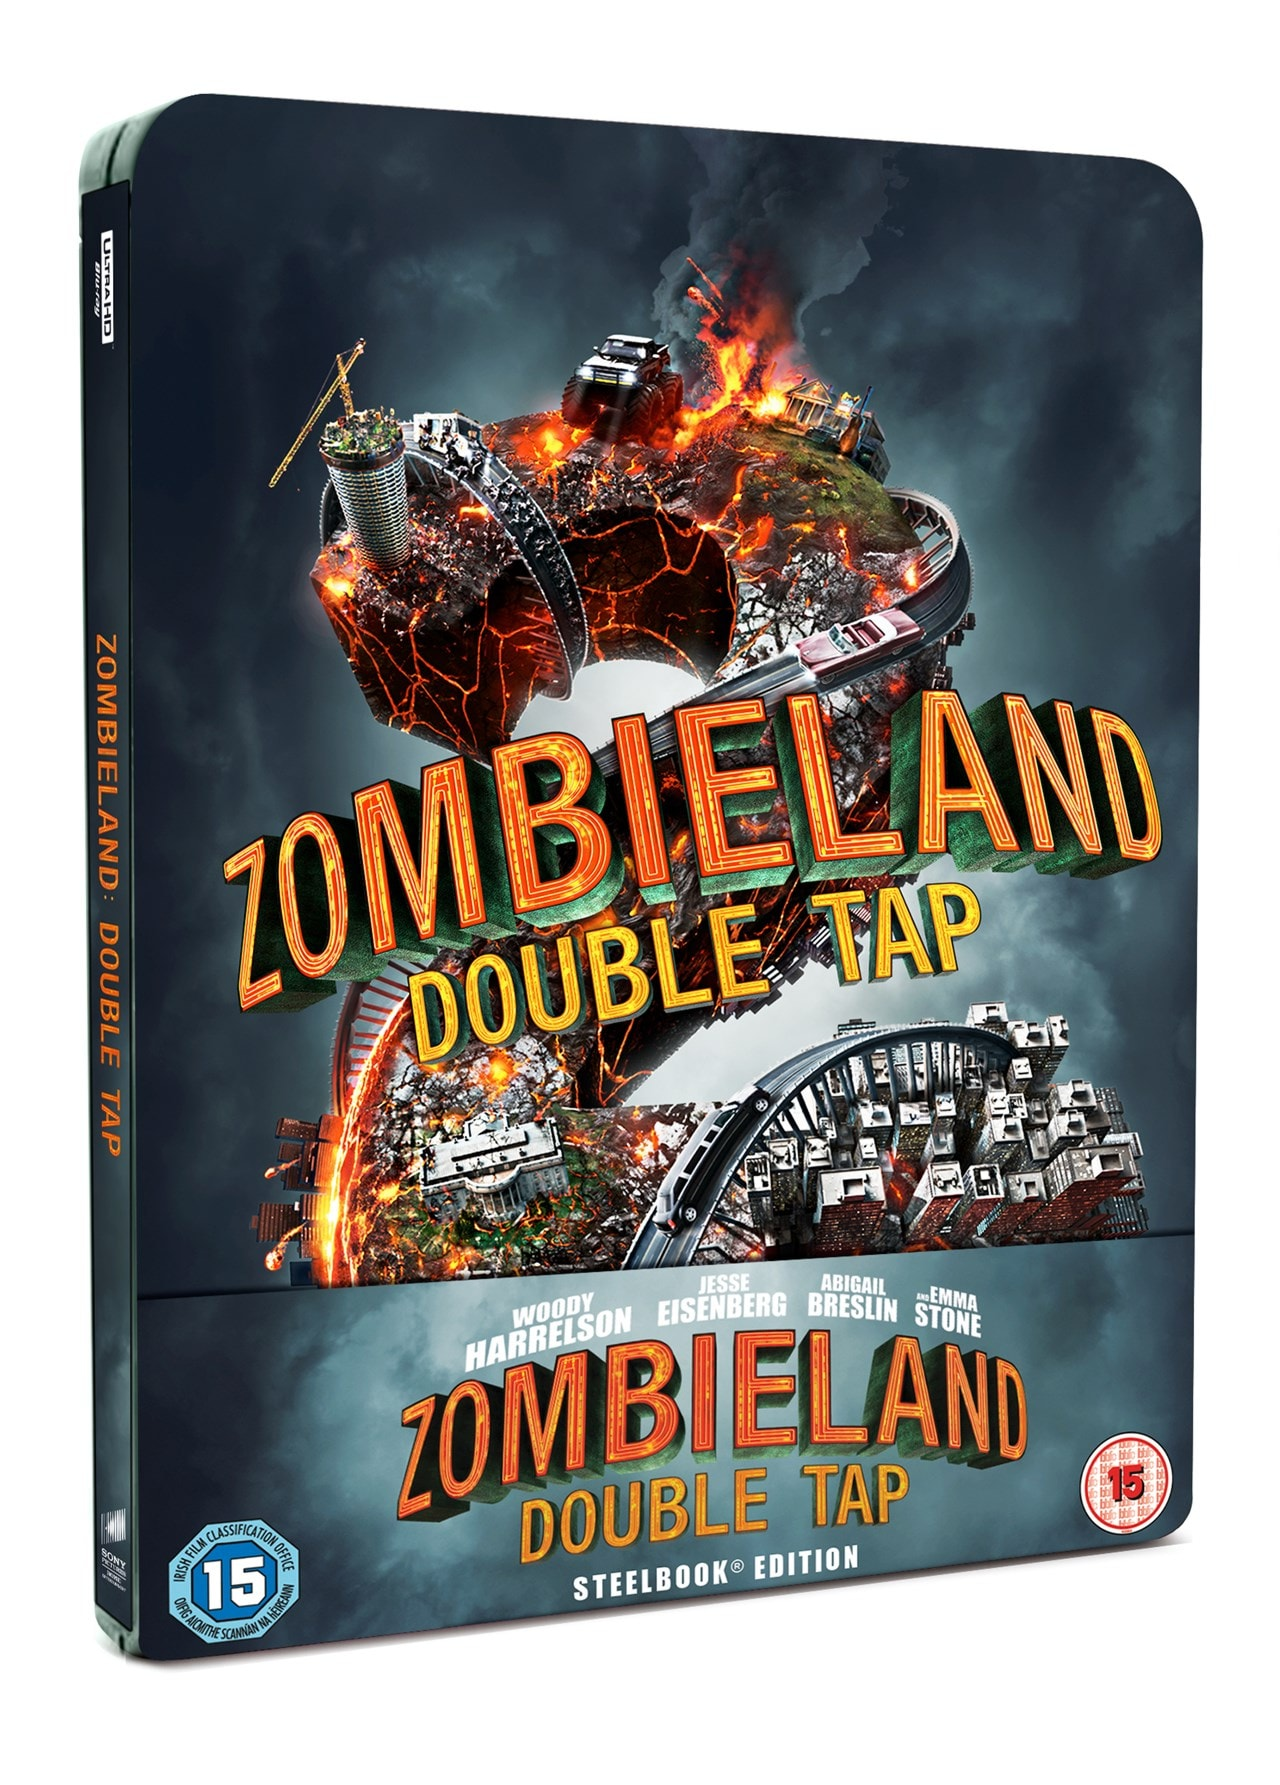 Zombieland: Double Tap (hmv Exclusive) 4K Ultra HD Steelbook - 2